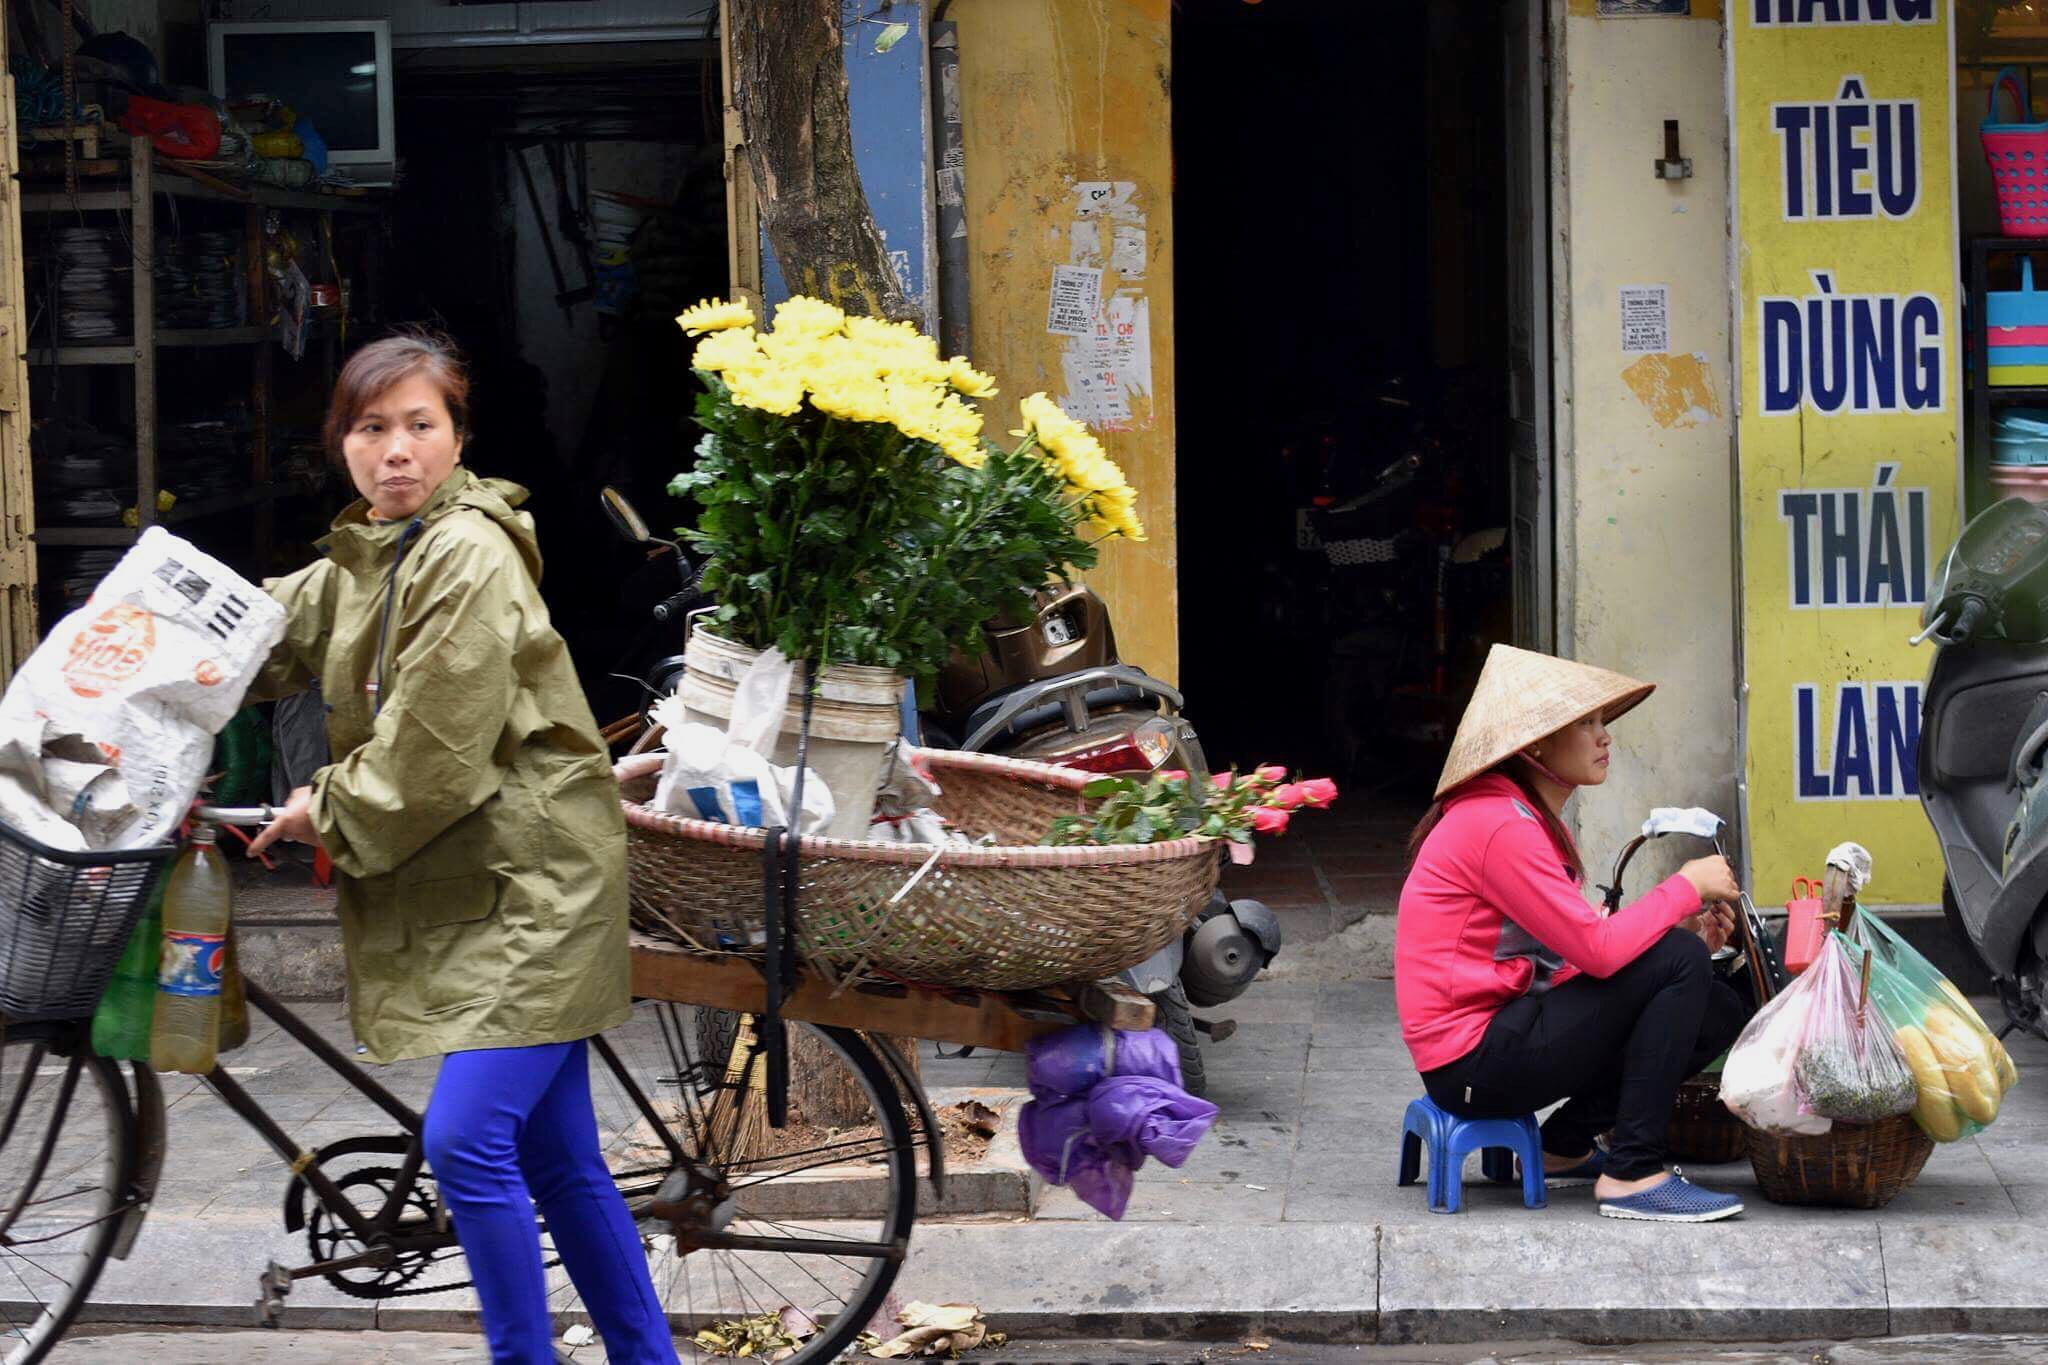 A local woman passes a sidewalk street vendor selling fresh food © | Nikki Vargas